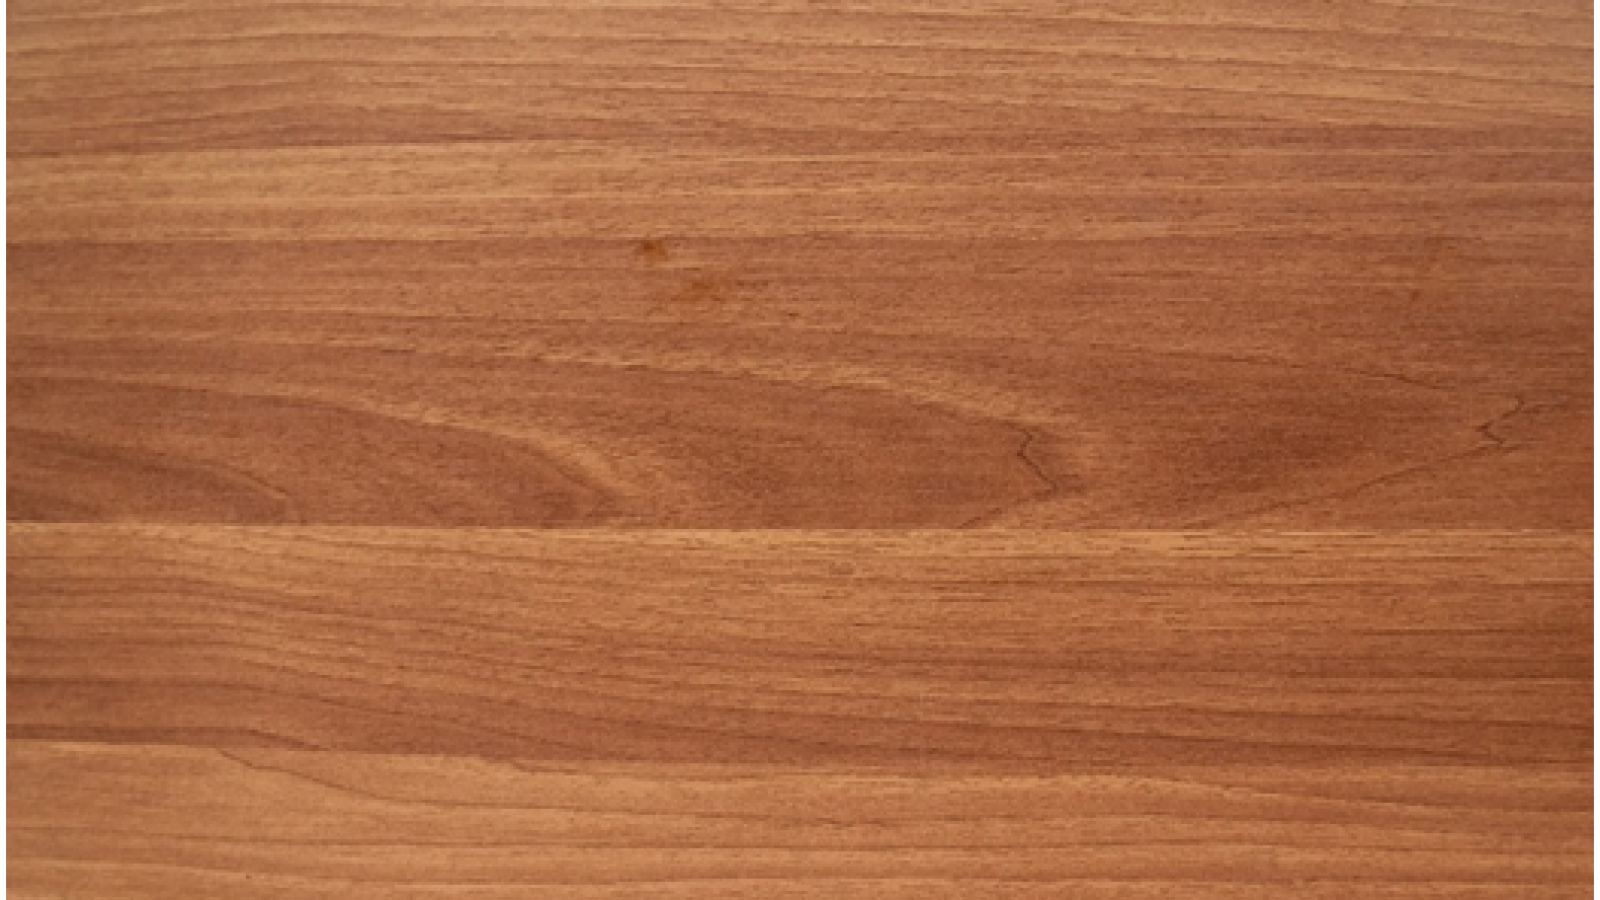 Tips on how to choose the right flooring colour2